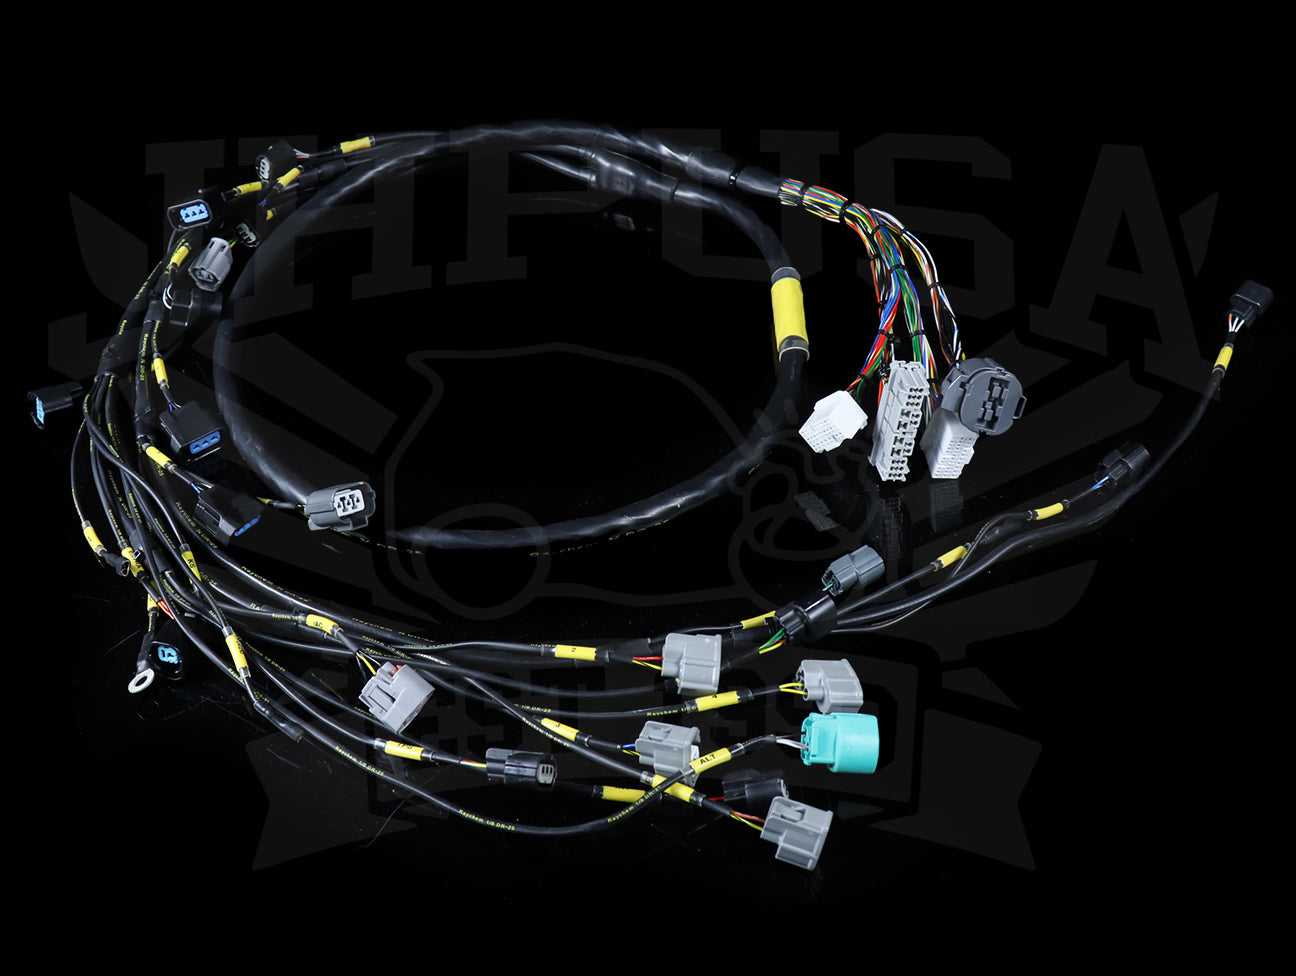 92 rhd prelude wire harness blog wiring diagram Honda Prelude 4th Gen 92 rhd prelude wire harness best wiring library honda prelude black and white 92 rhd prelude wire harness